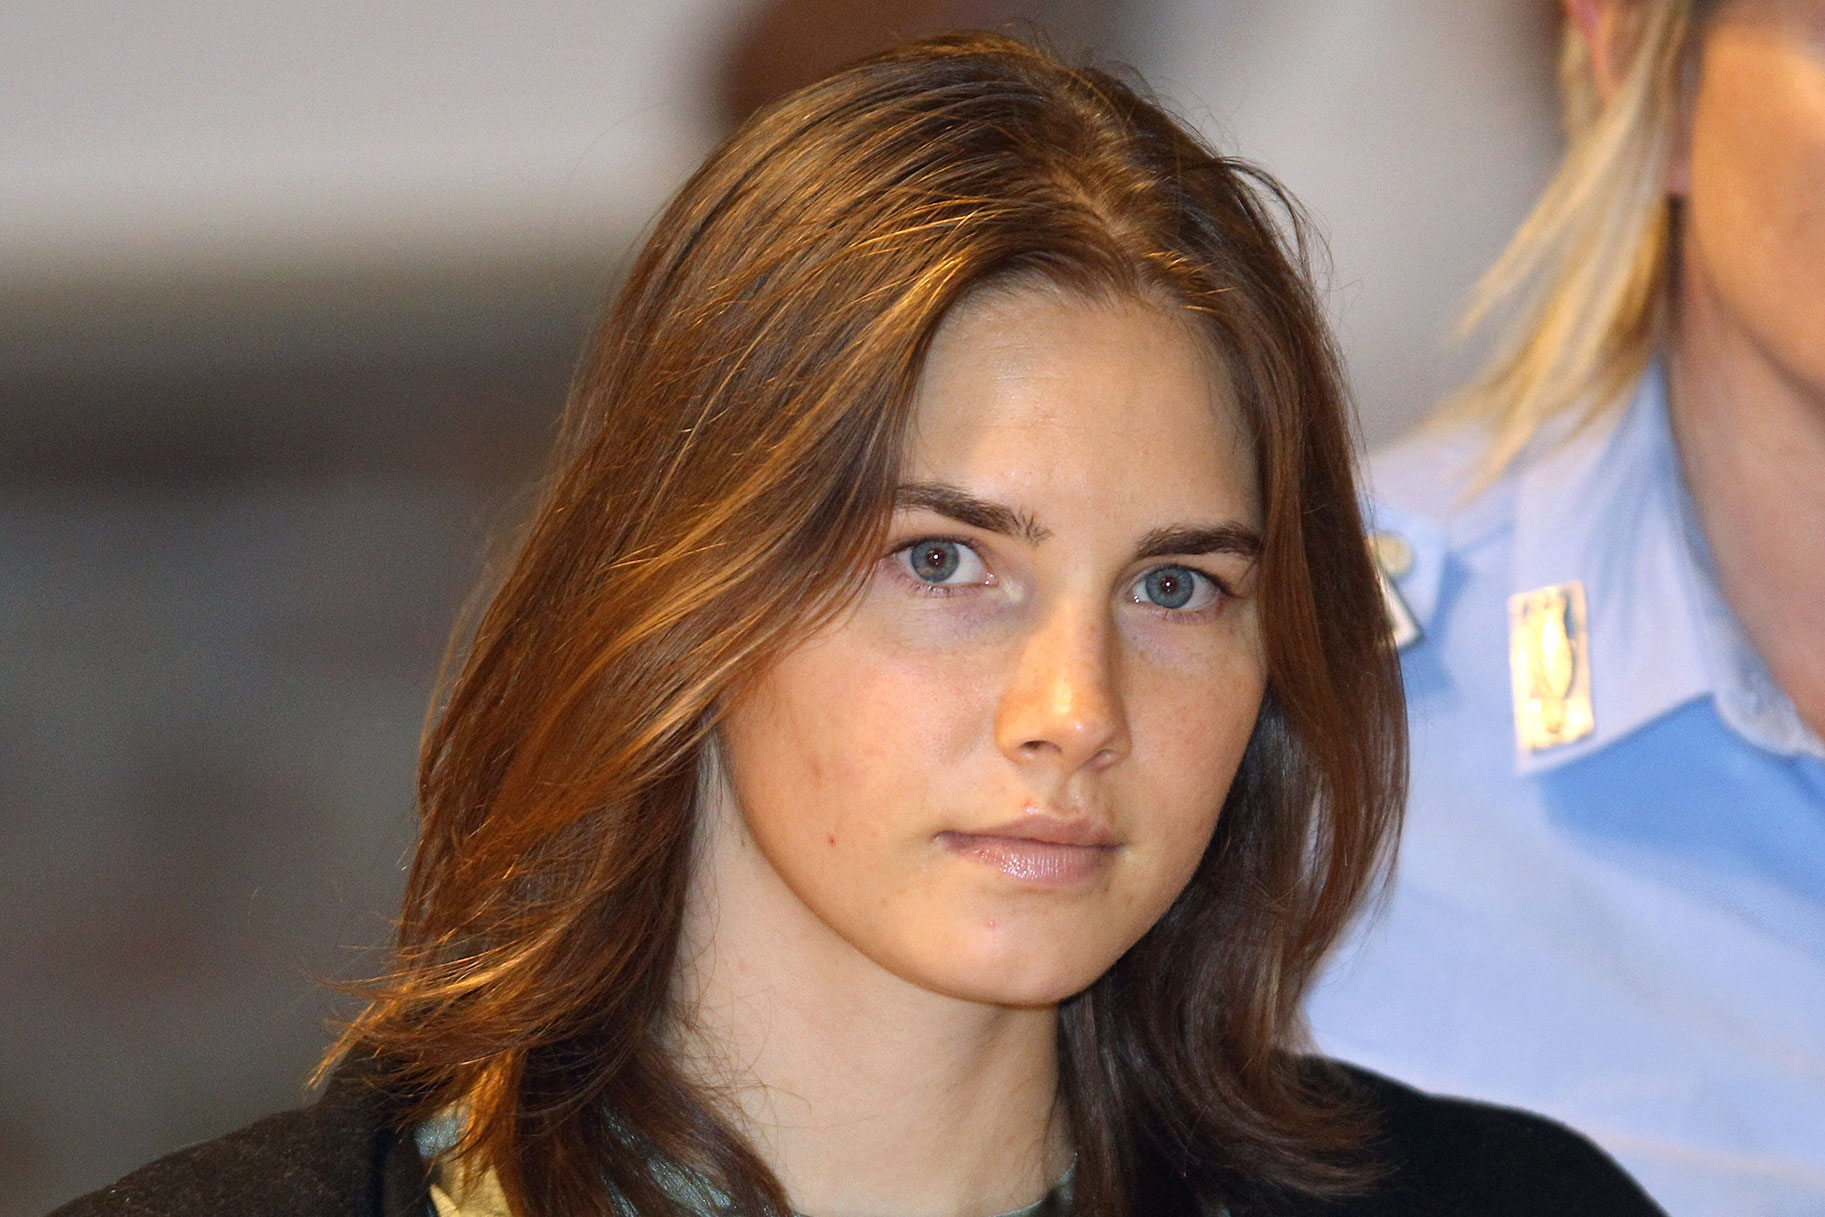 Amanda Knox Returns To Italy For The First Time Since Infamous Imprisonment And Acquittal